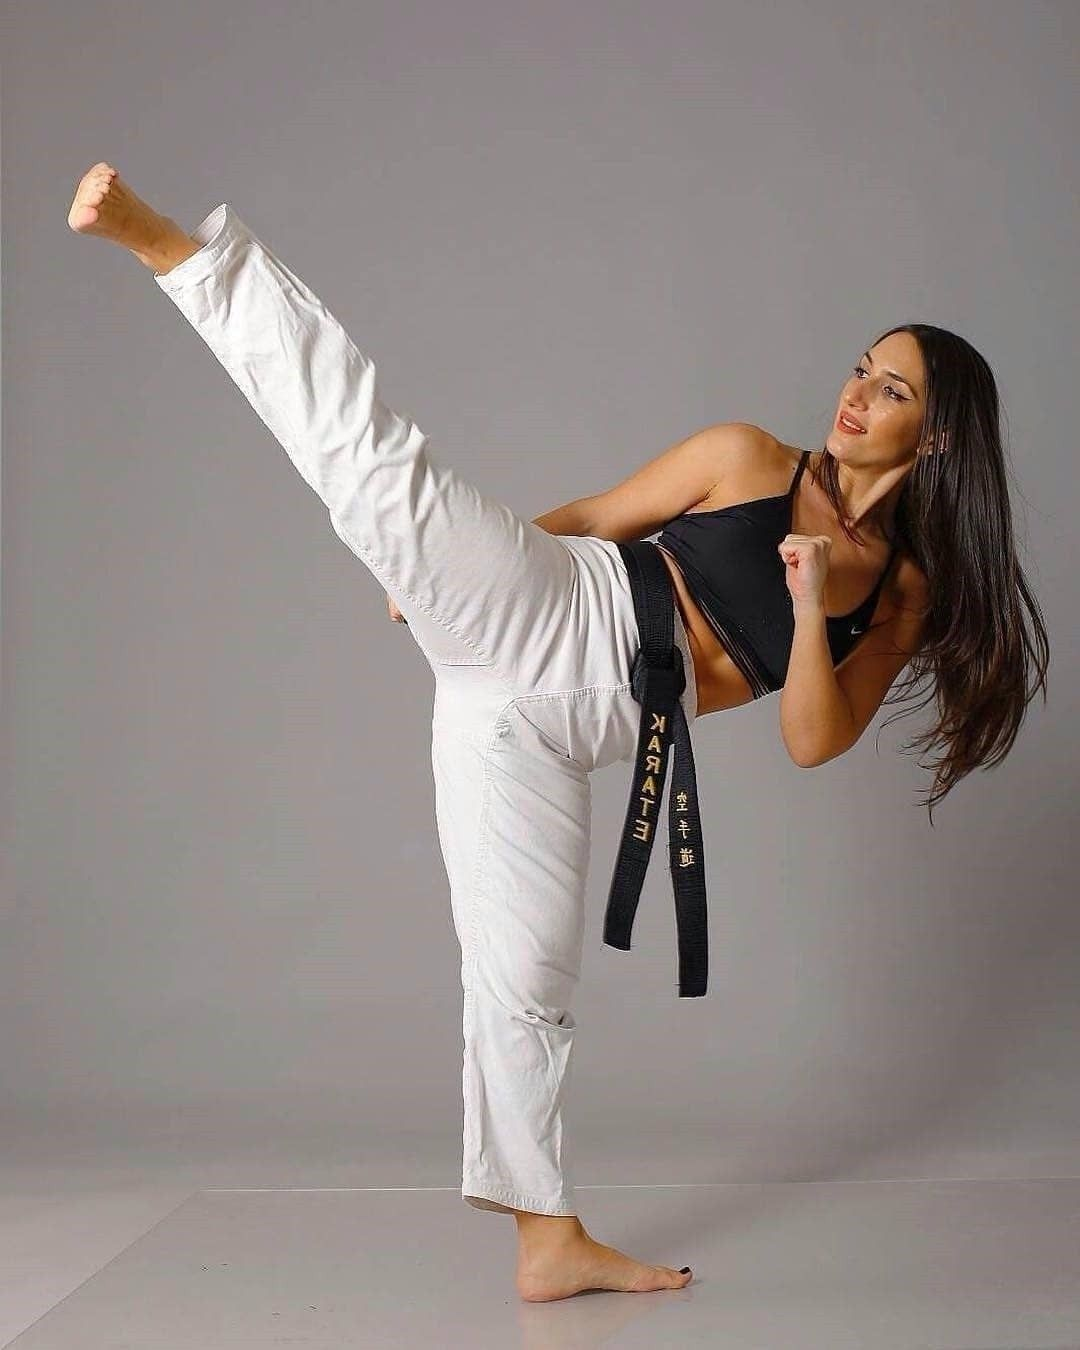 sexy women doing martial arts